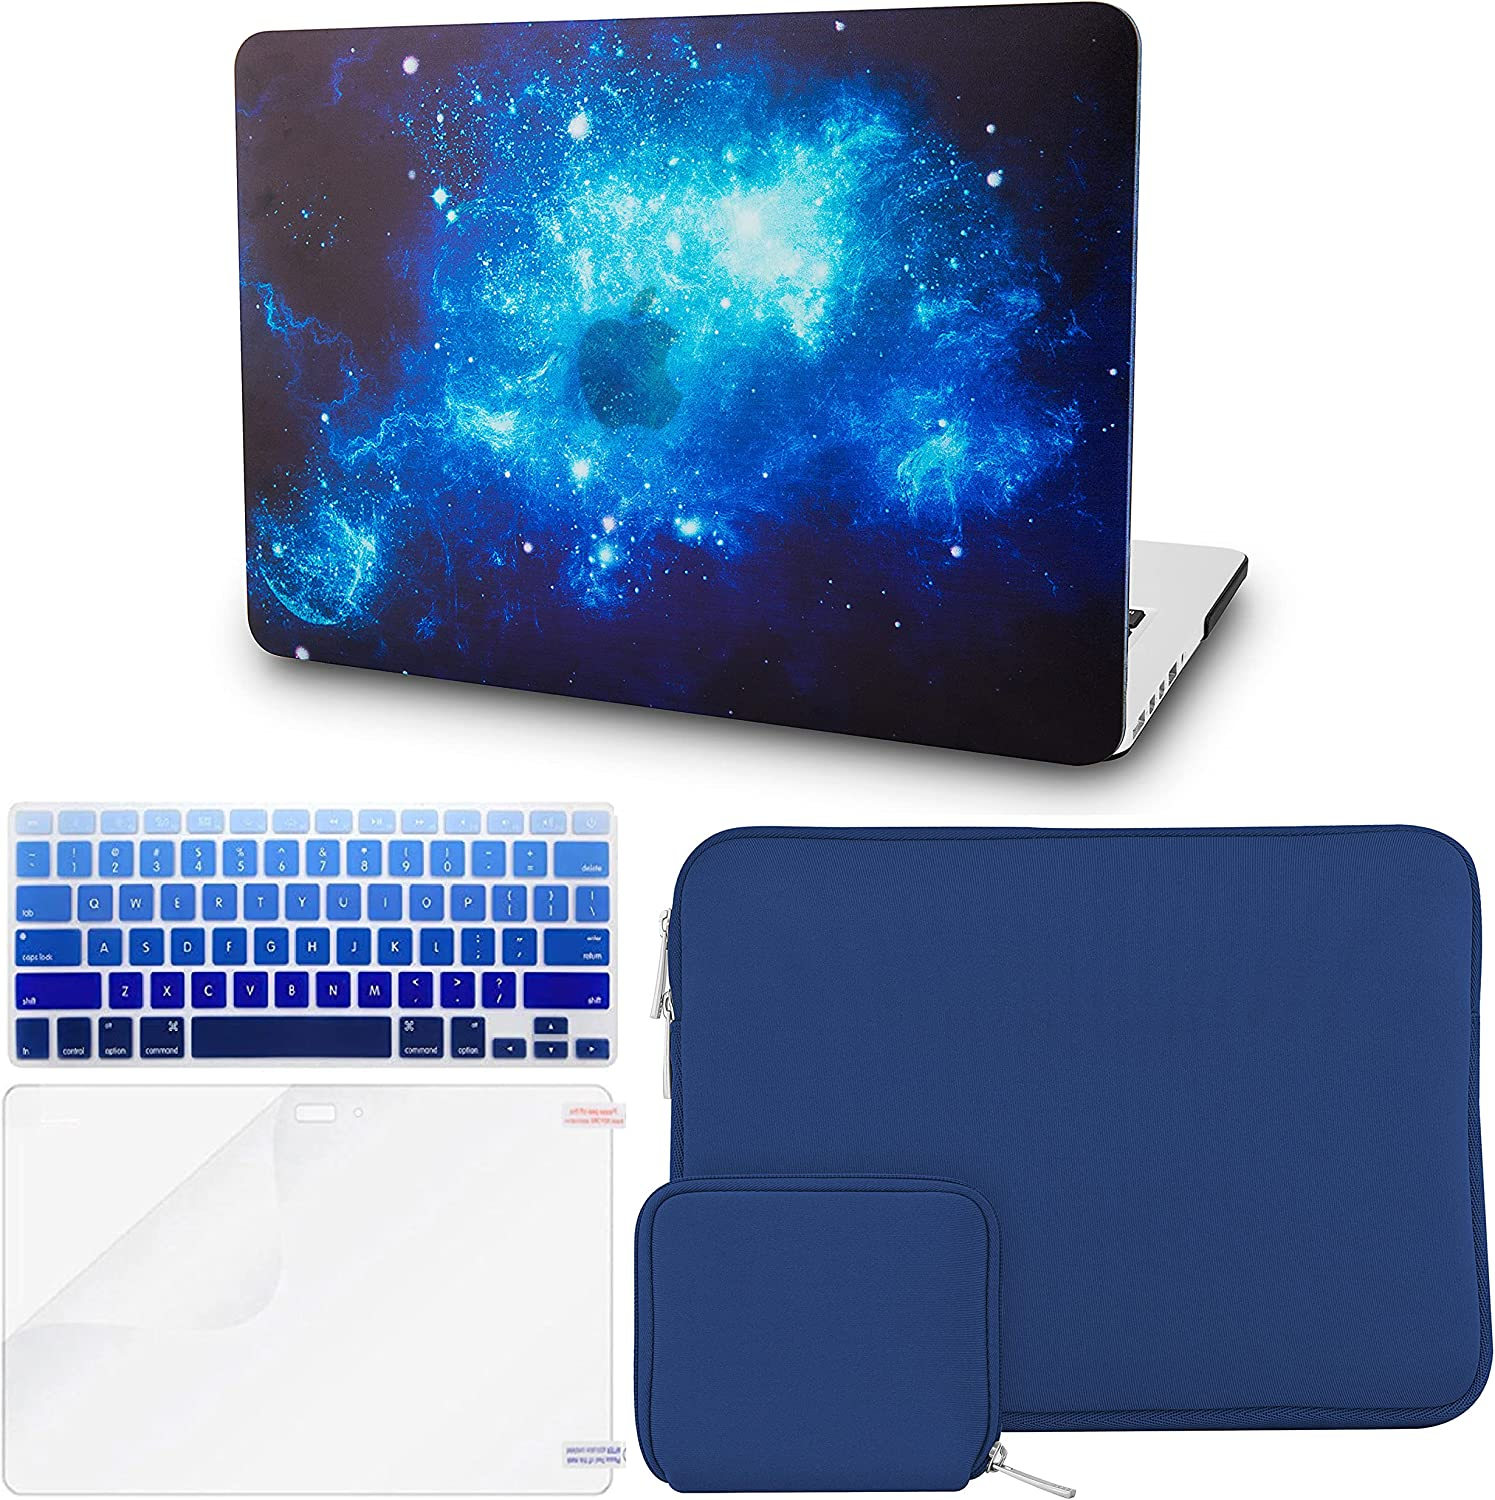 KECC Laptop Case Compatible with Very popular MacBook w Weekly update Keyboard 13